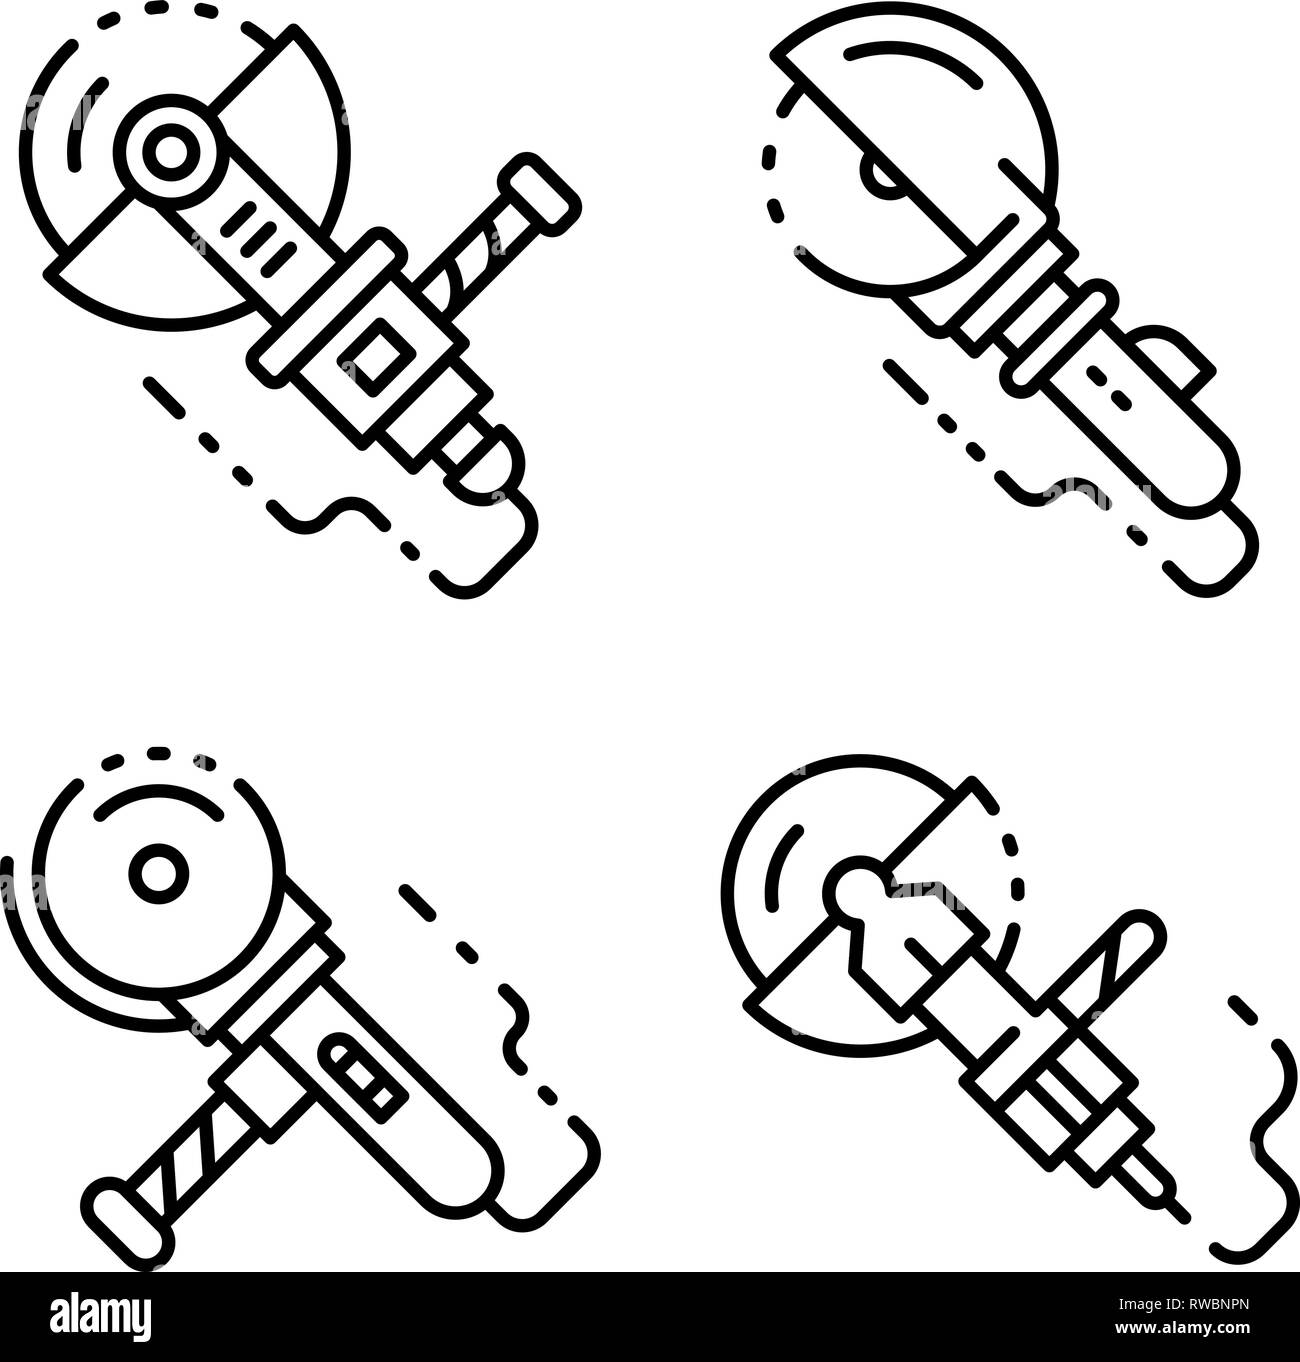 Angle grinder icons set, outline style - Stock Image